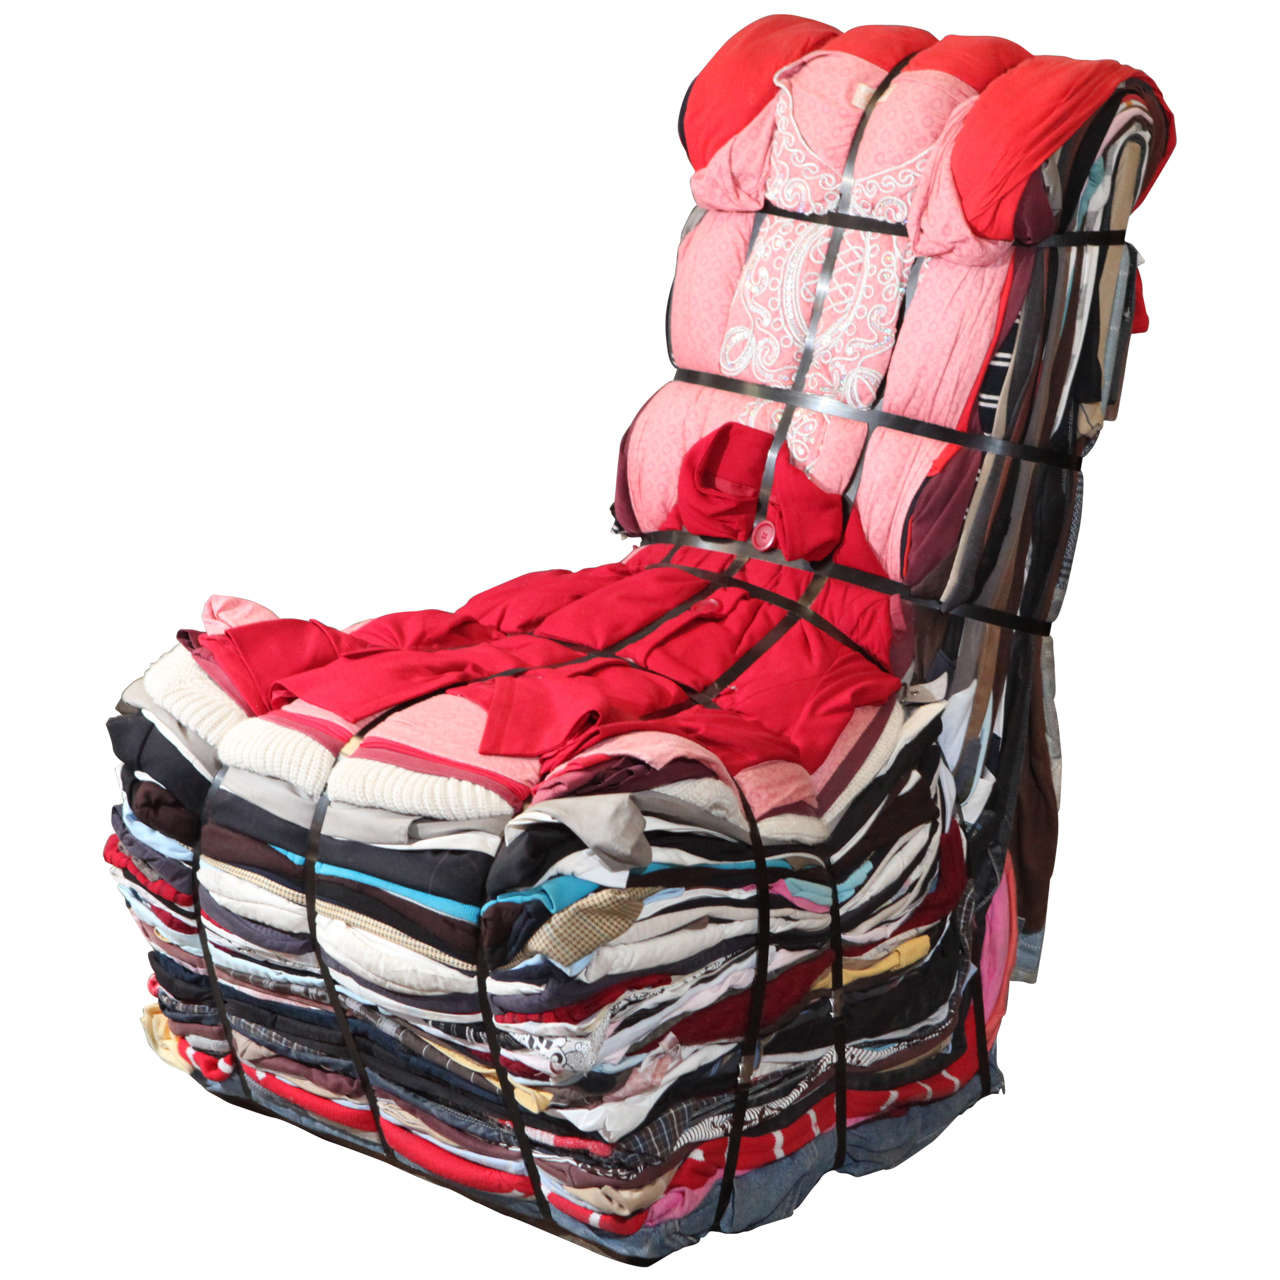 Tejo Remy Rag Chair 1991 For Sale At 1stdibs